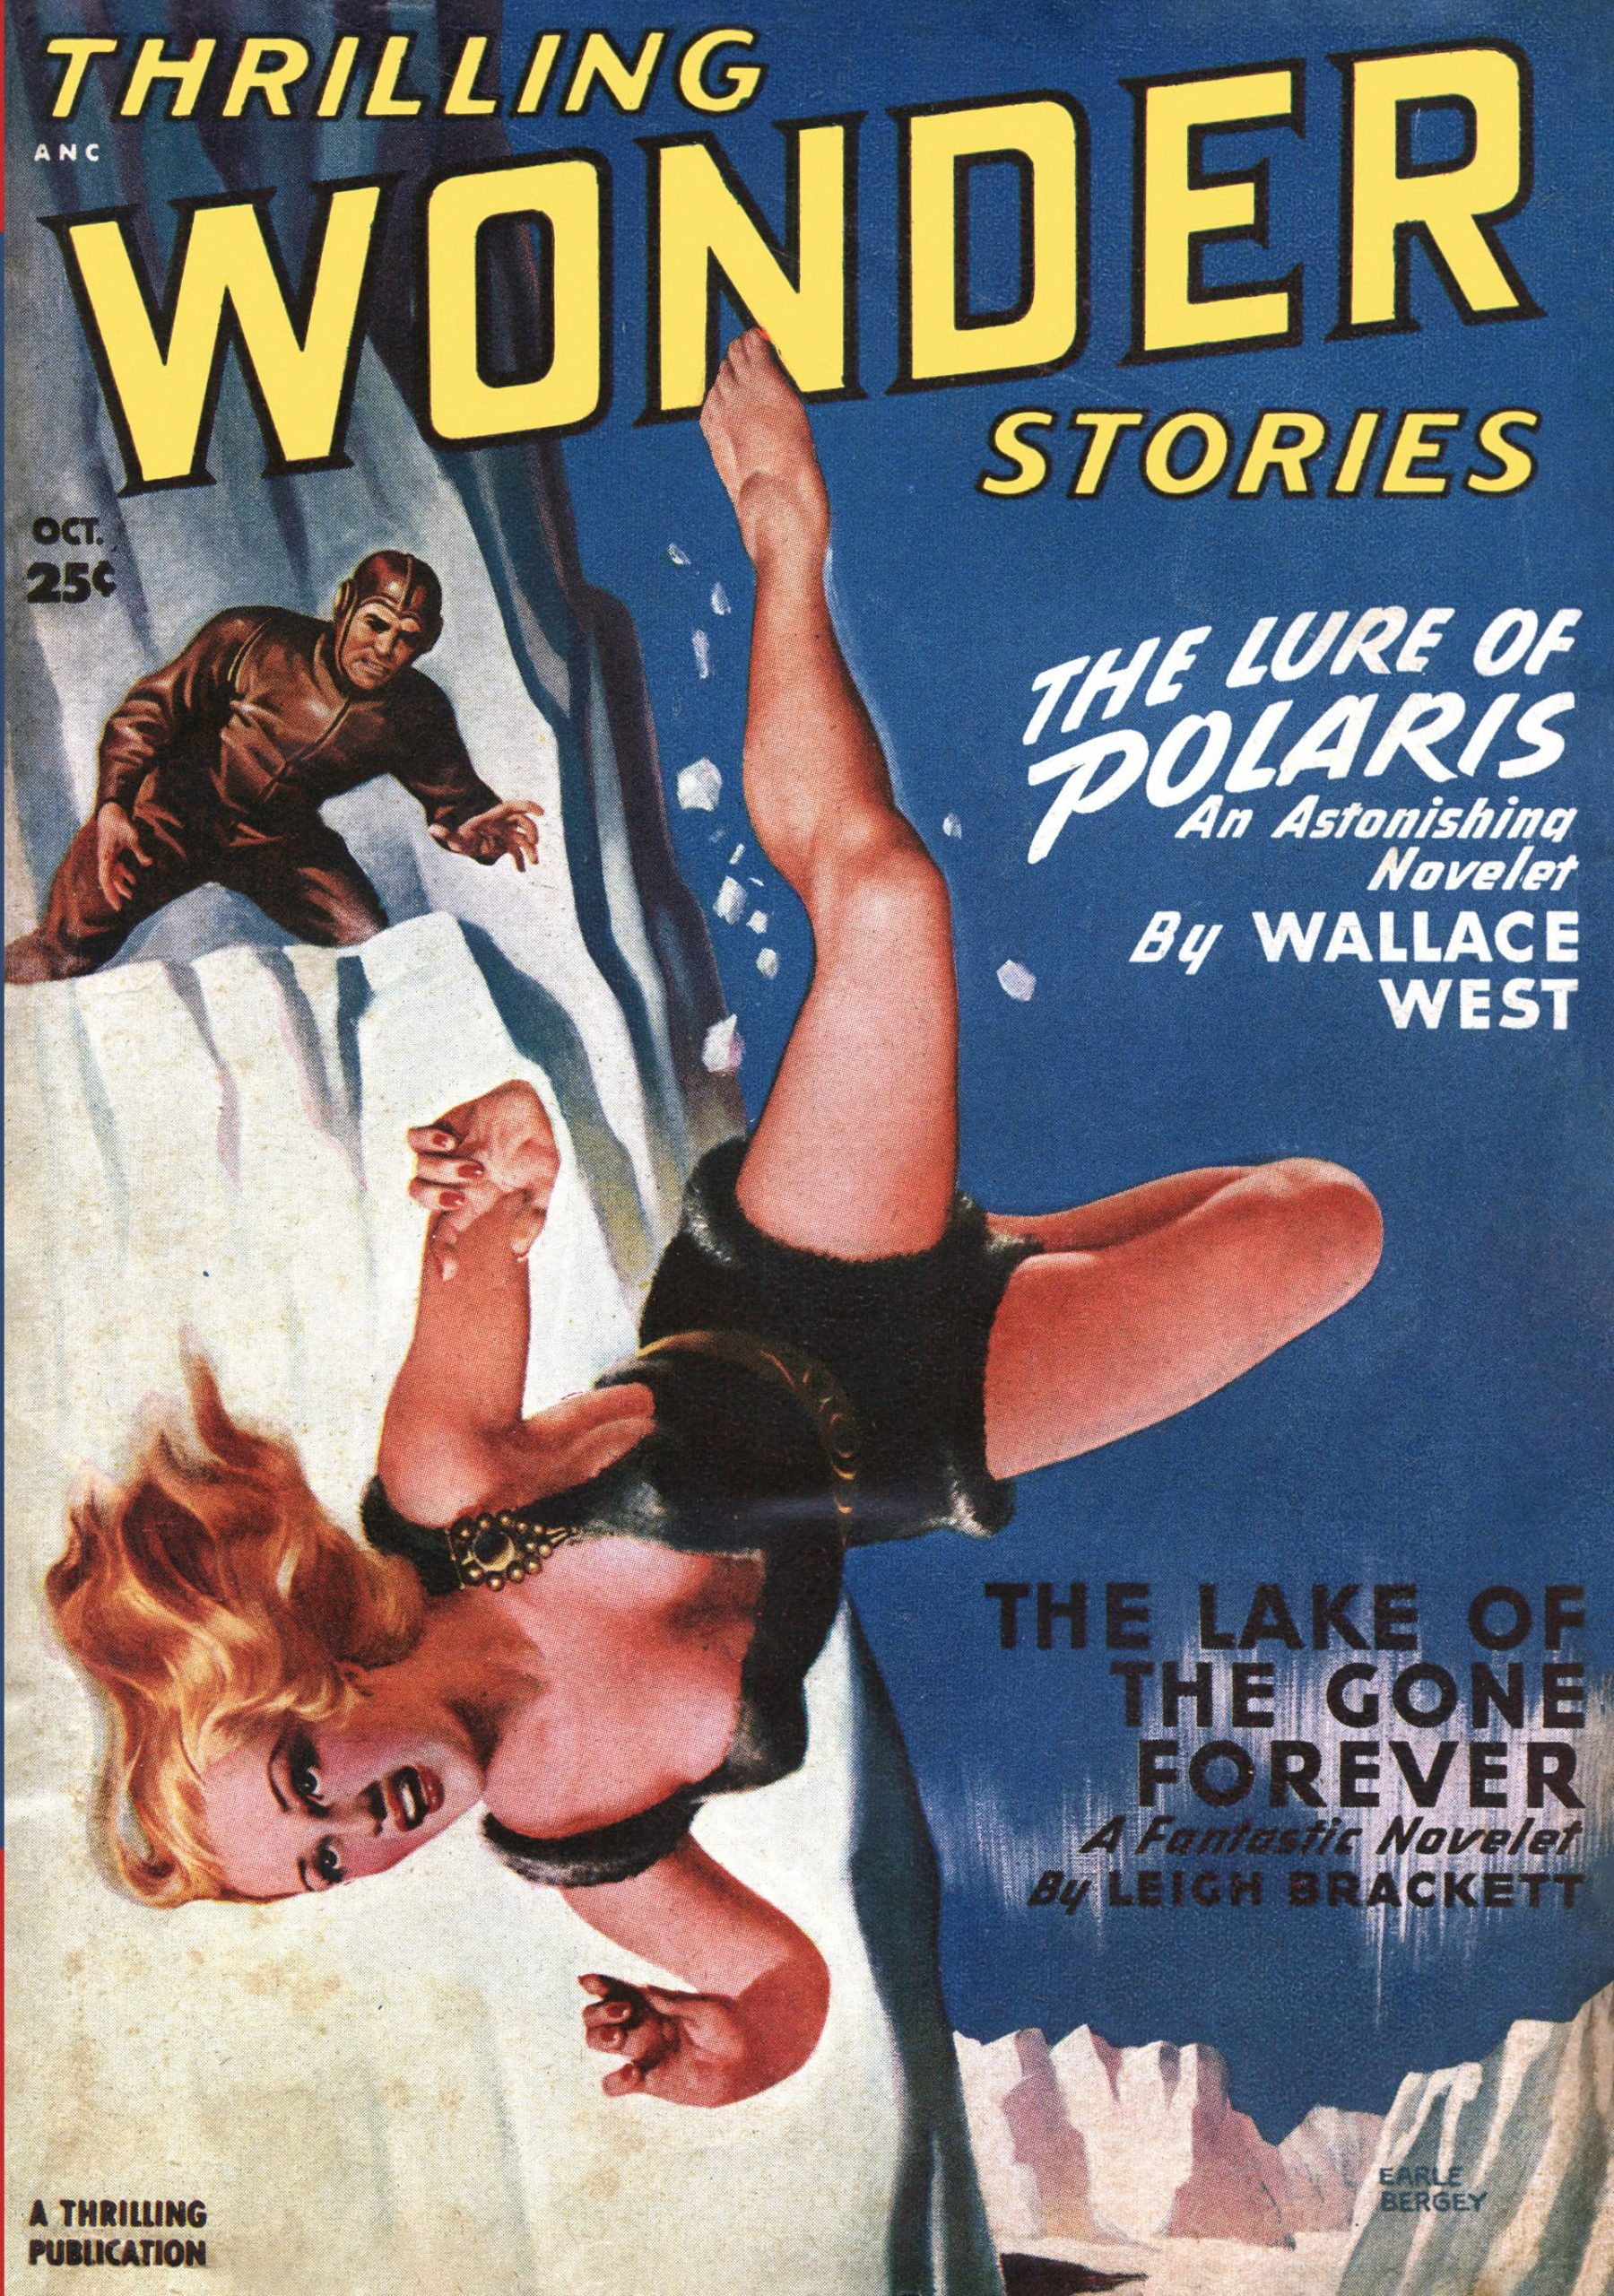 A scantily-clad woman falls from an icy cliff in this cover for the October 1949 Thrilling Wonder Stories by Earle Bergey.